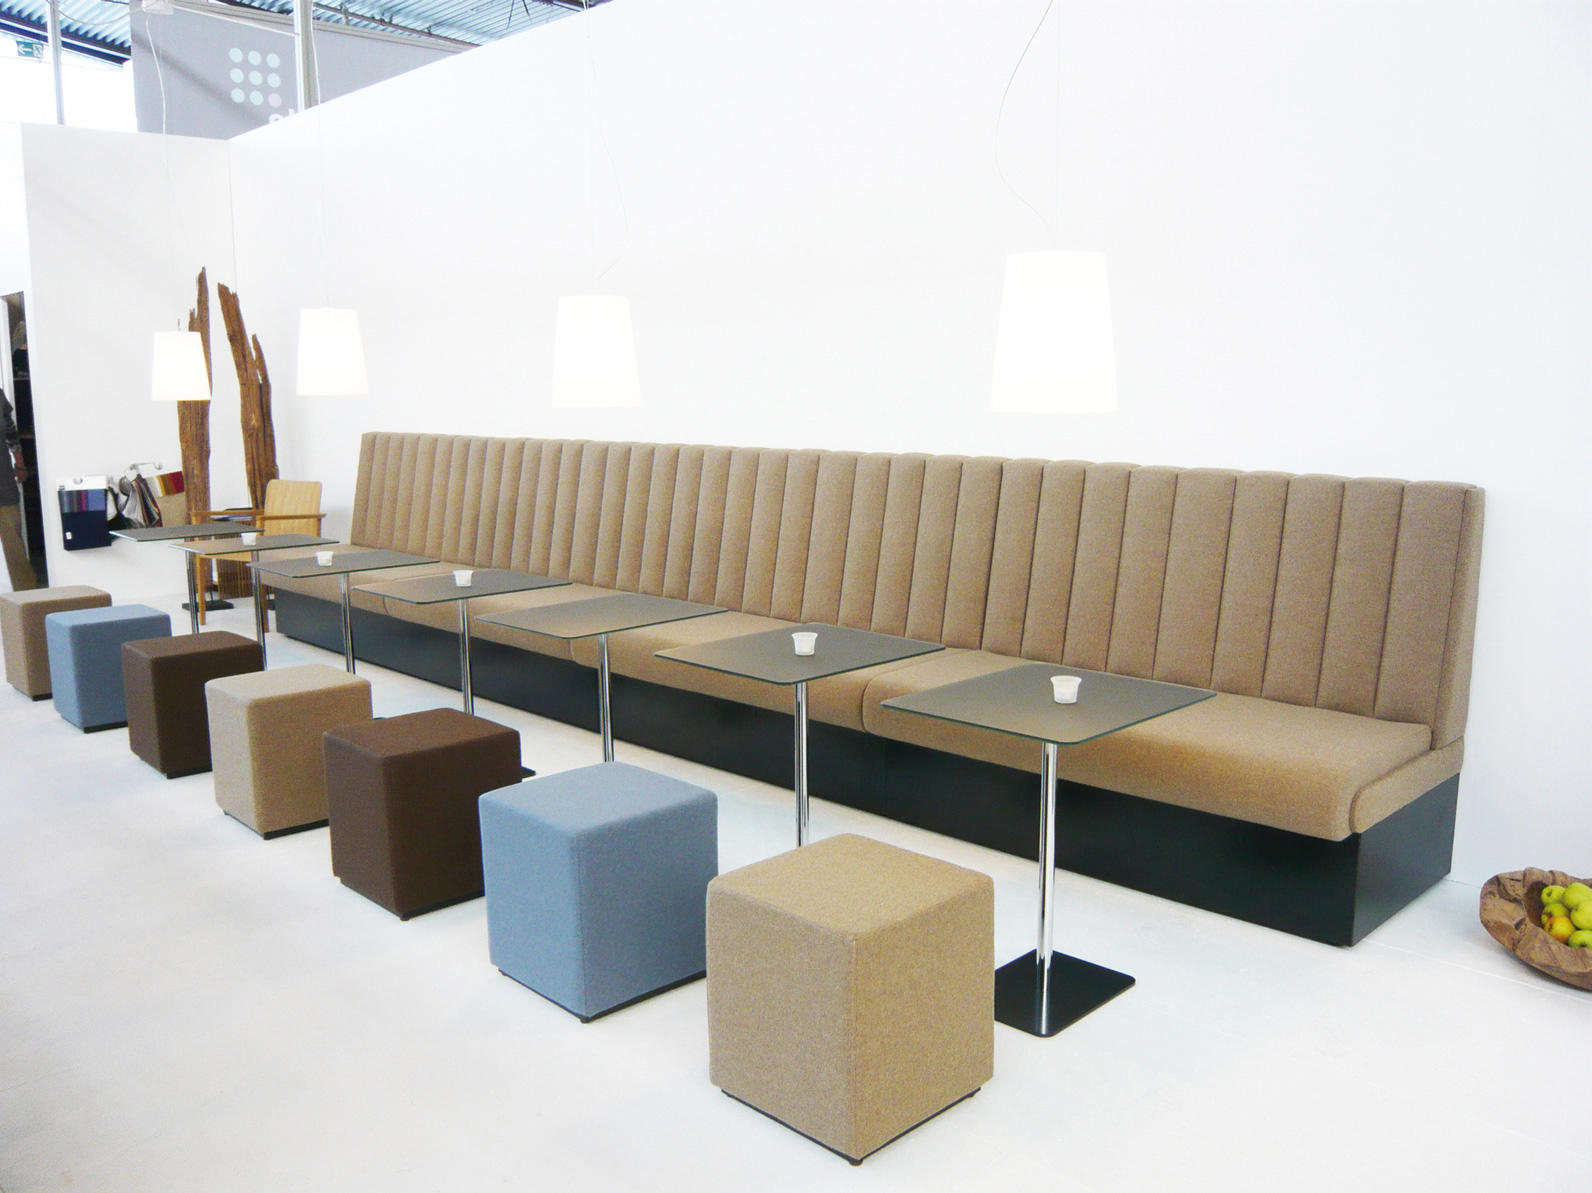 Bench Restaurant Thdr Hiltona Bench sofas From Jankurtz Architonic